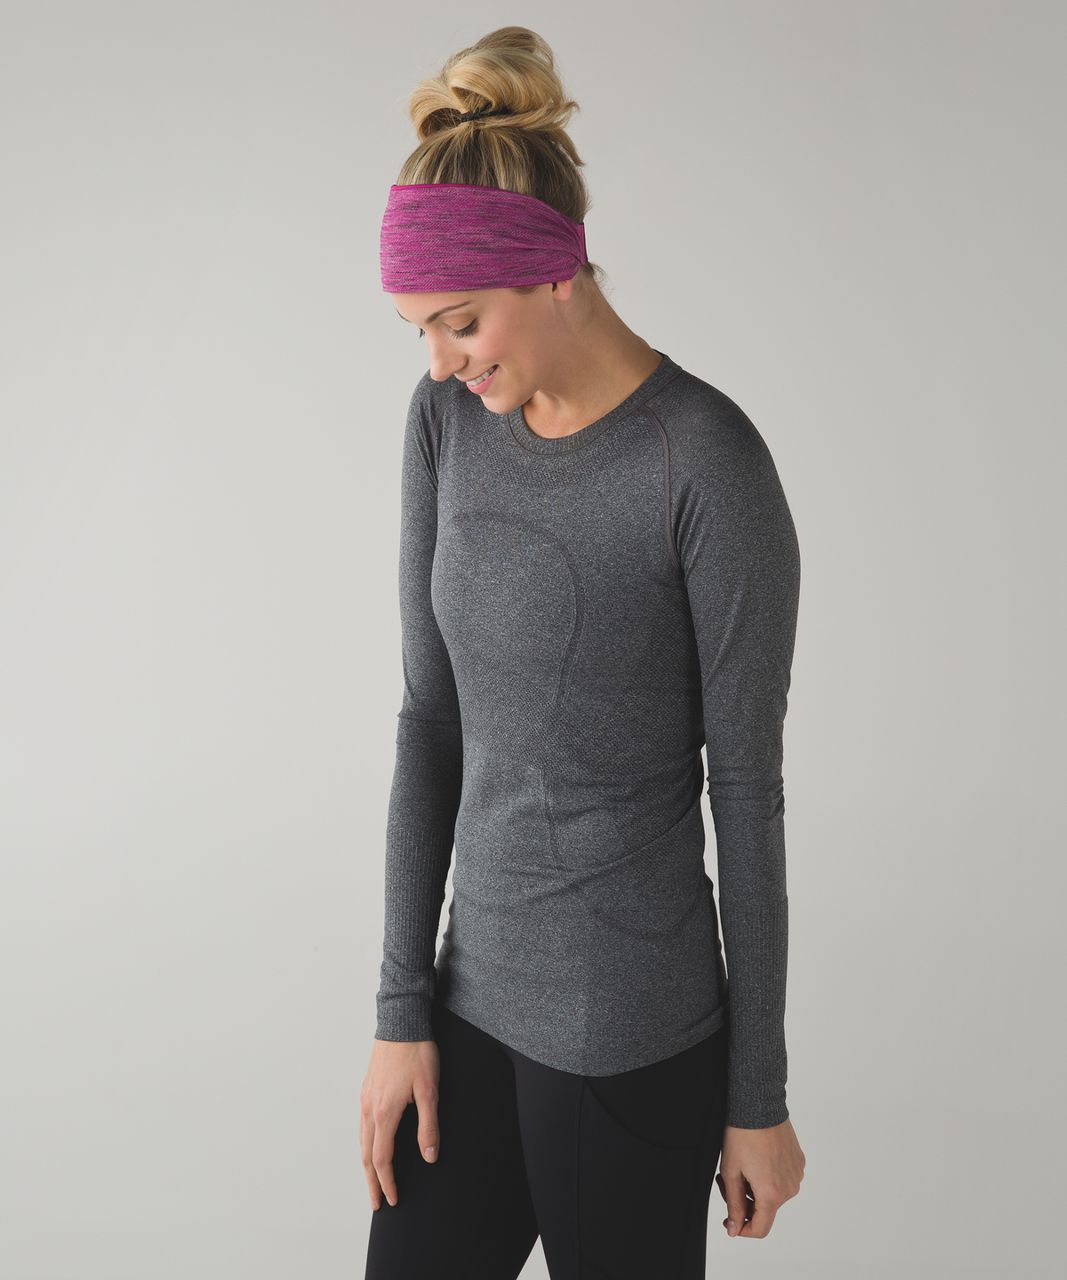 Lululemon Fringe Fighter Headband - Raspberry / Tiger Space Dye Bordeaux Drama Raspberry